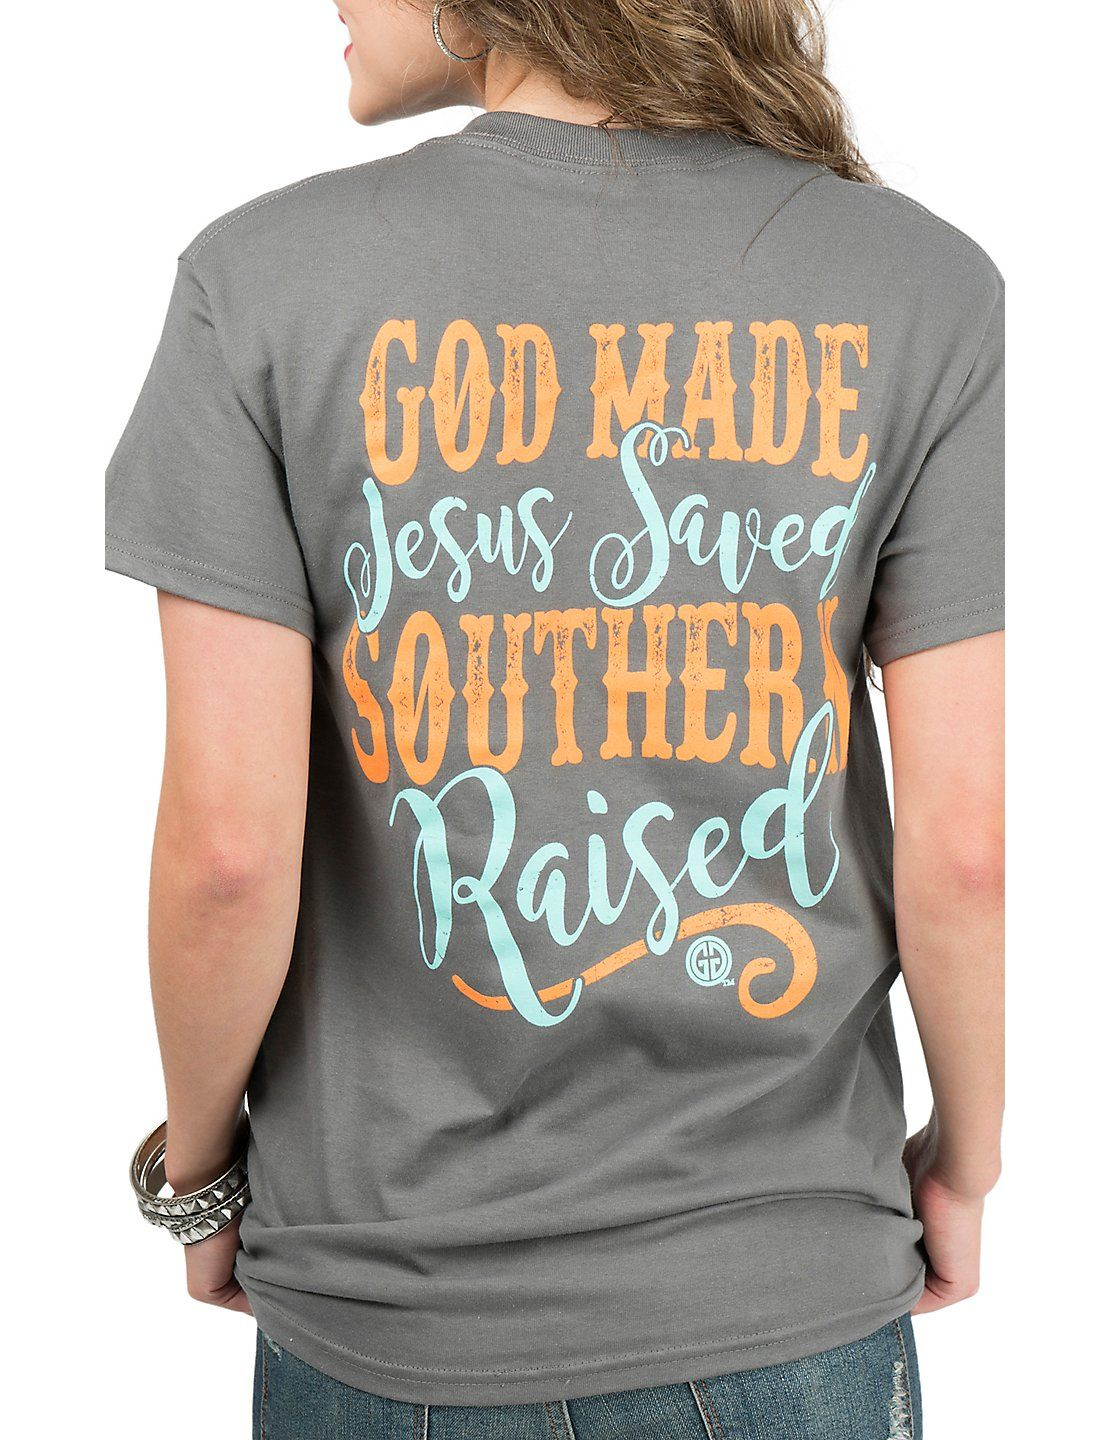 8cfc33b3d Girlie Girl Originals Women's Charcoal with God Made Jesus Saved Southern  Raised Screen Print Short Sleeve T-Shirt   Cavender's